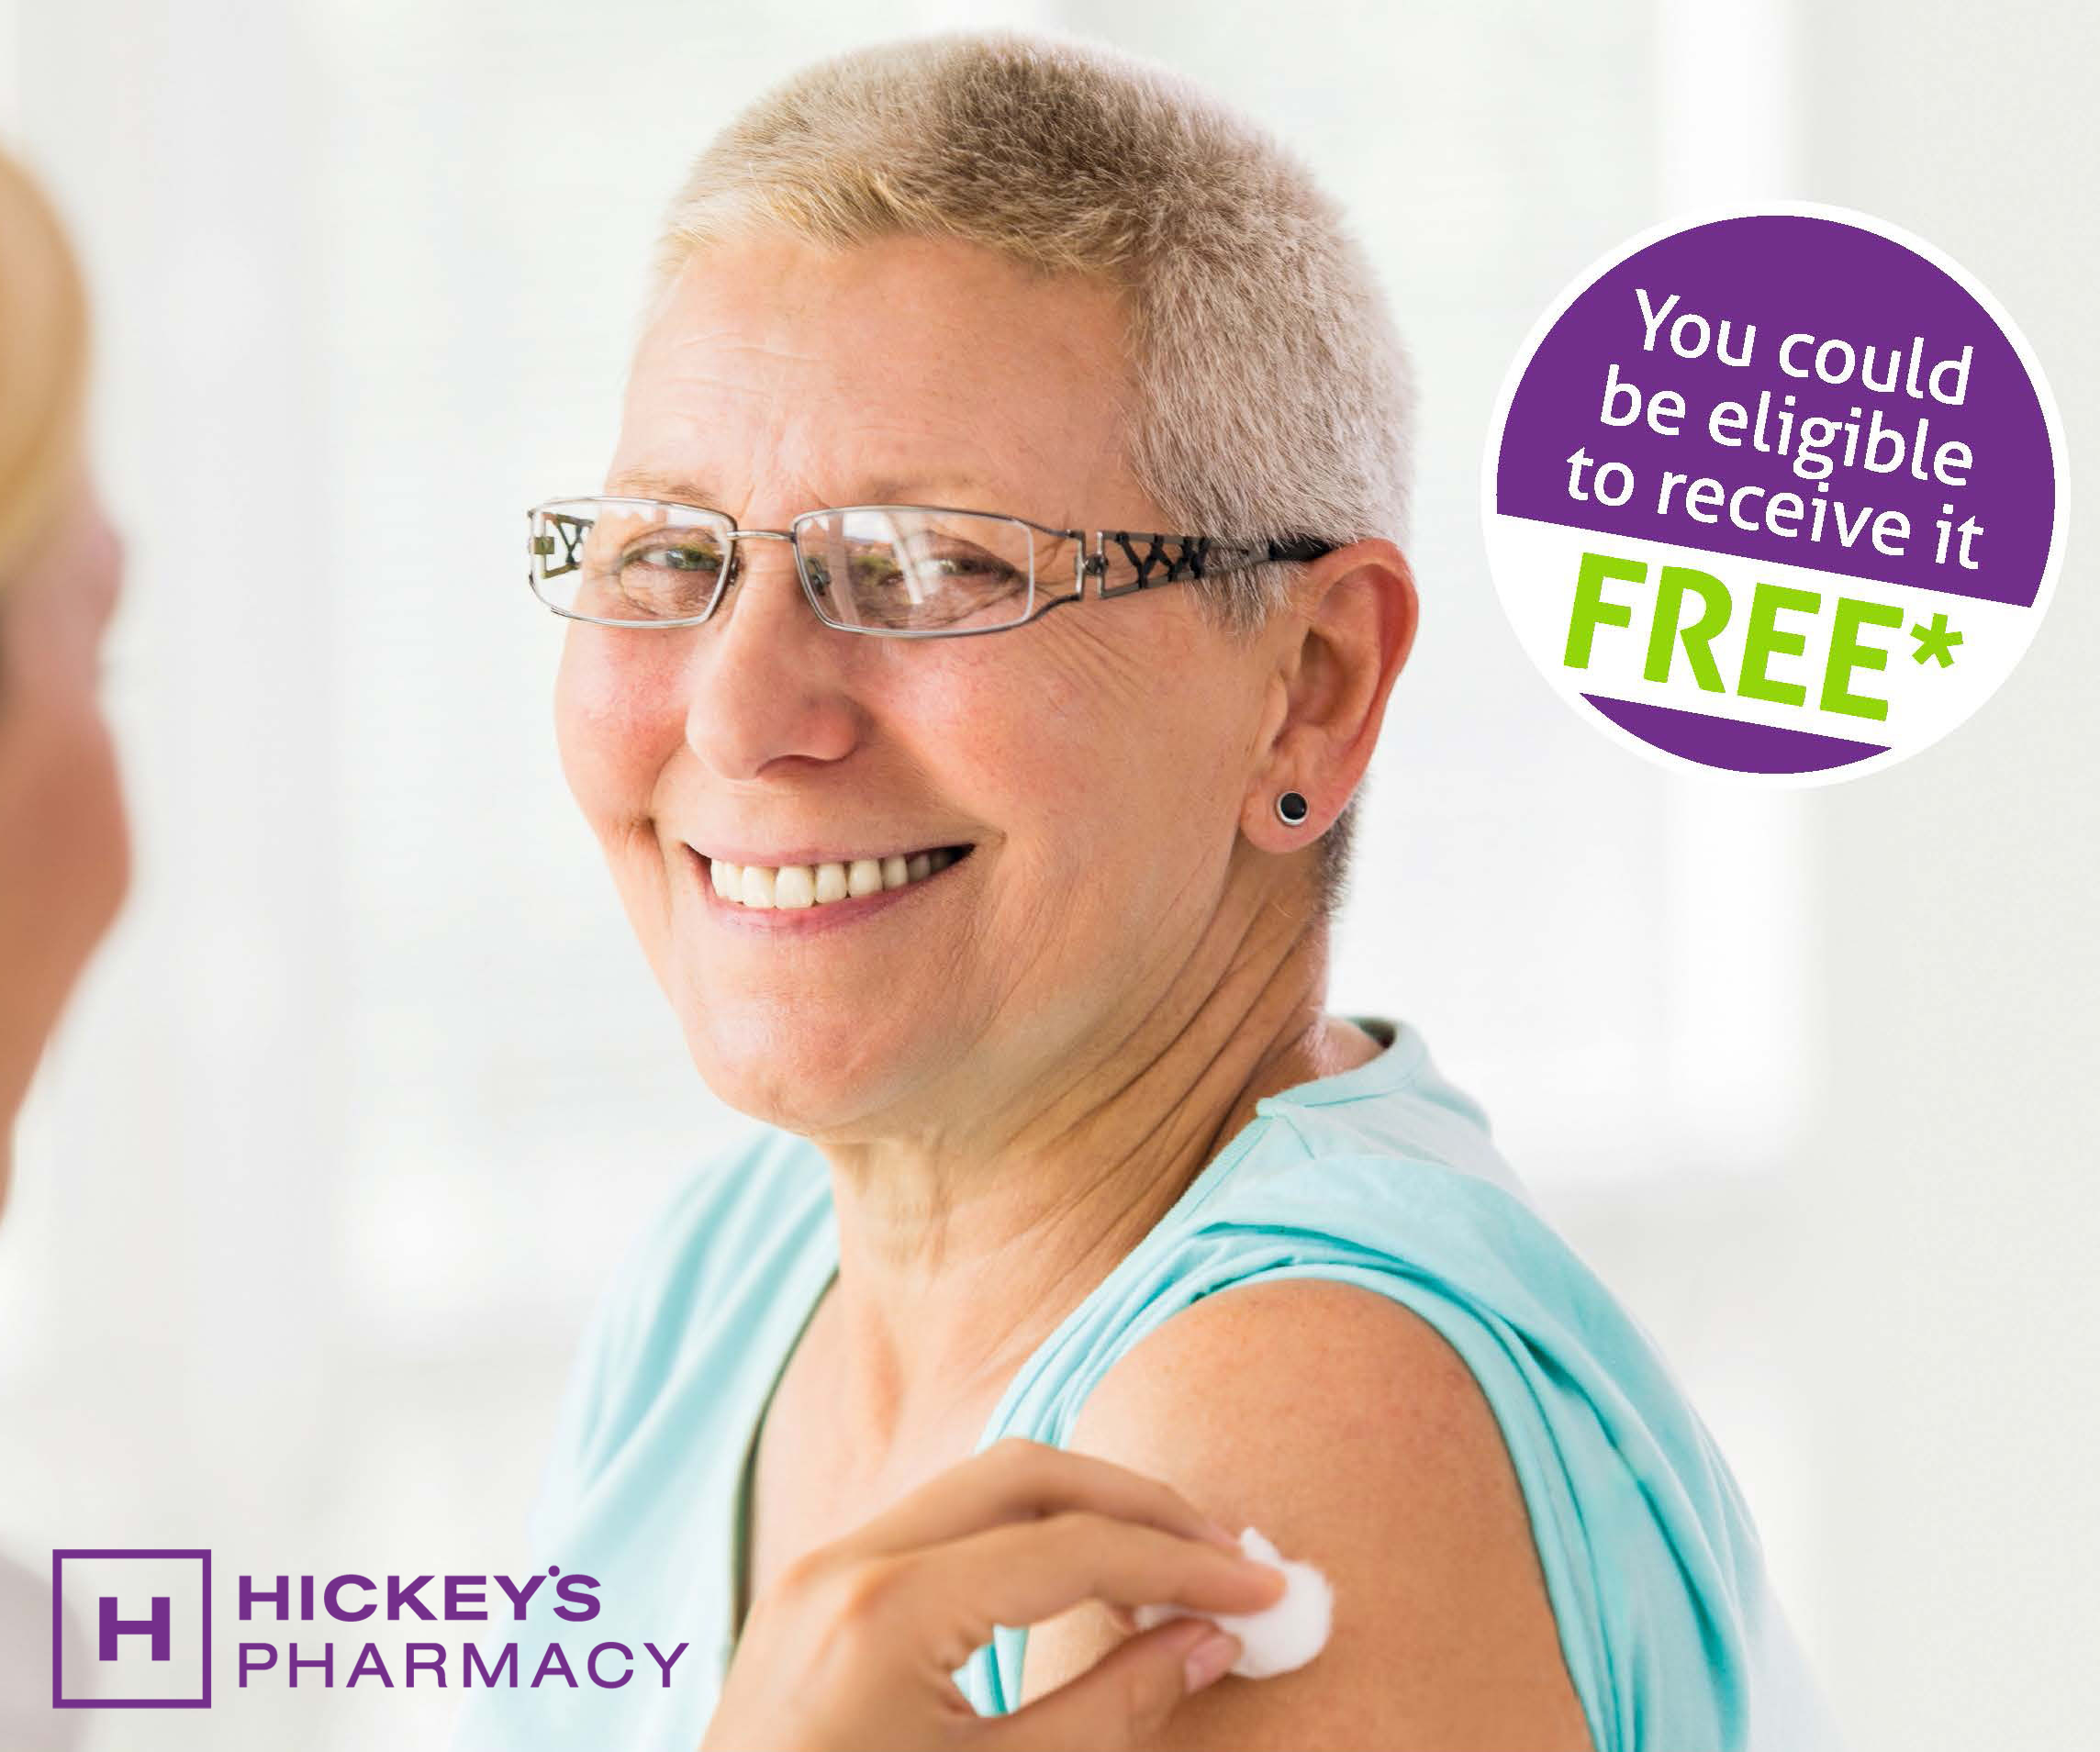 The flu vaccine is now available in Hickey's Pharmacy!